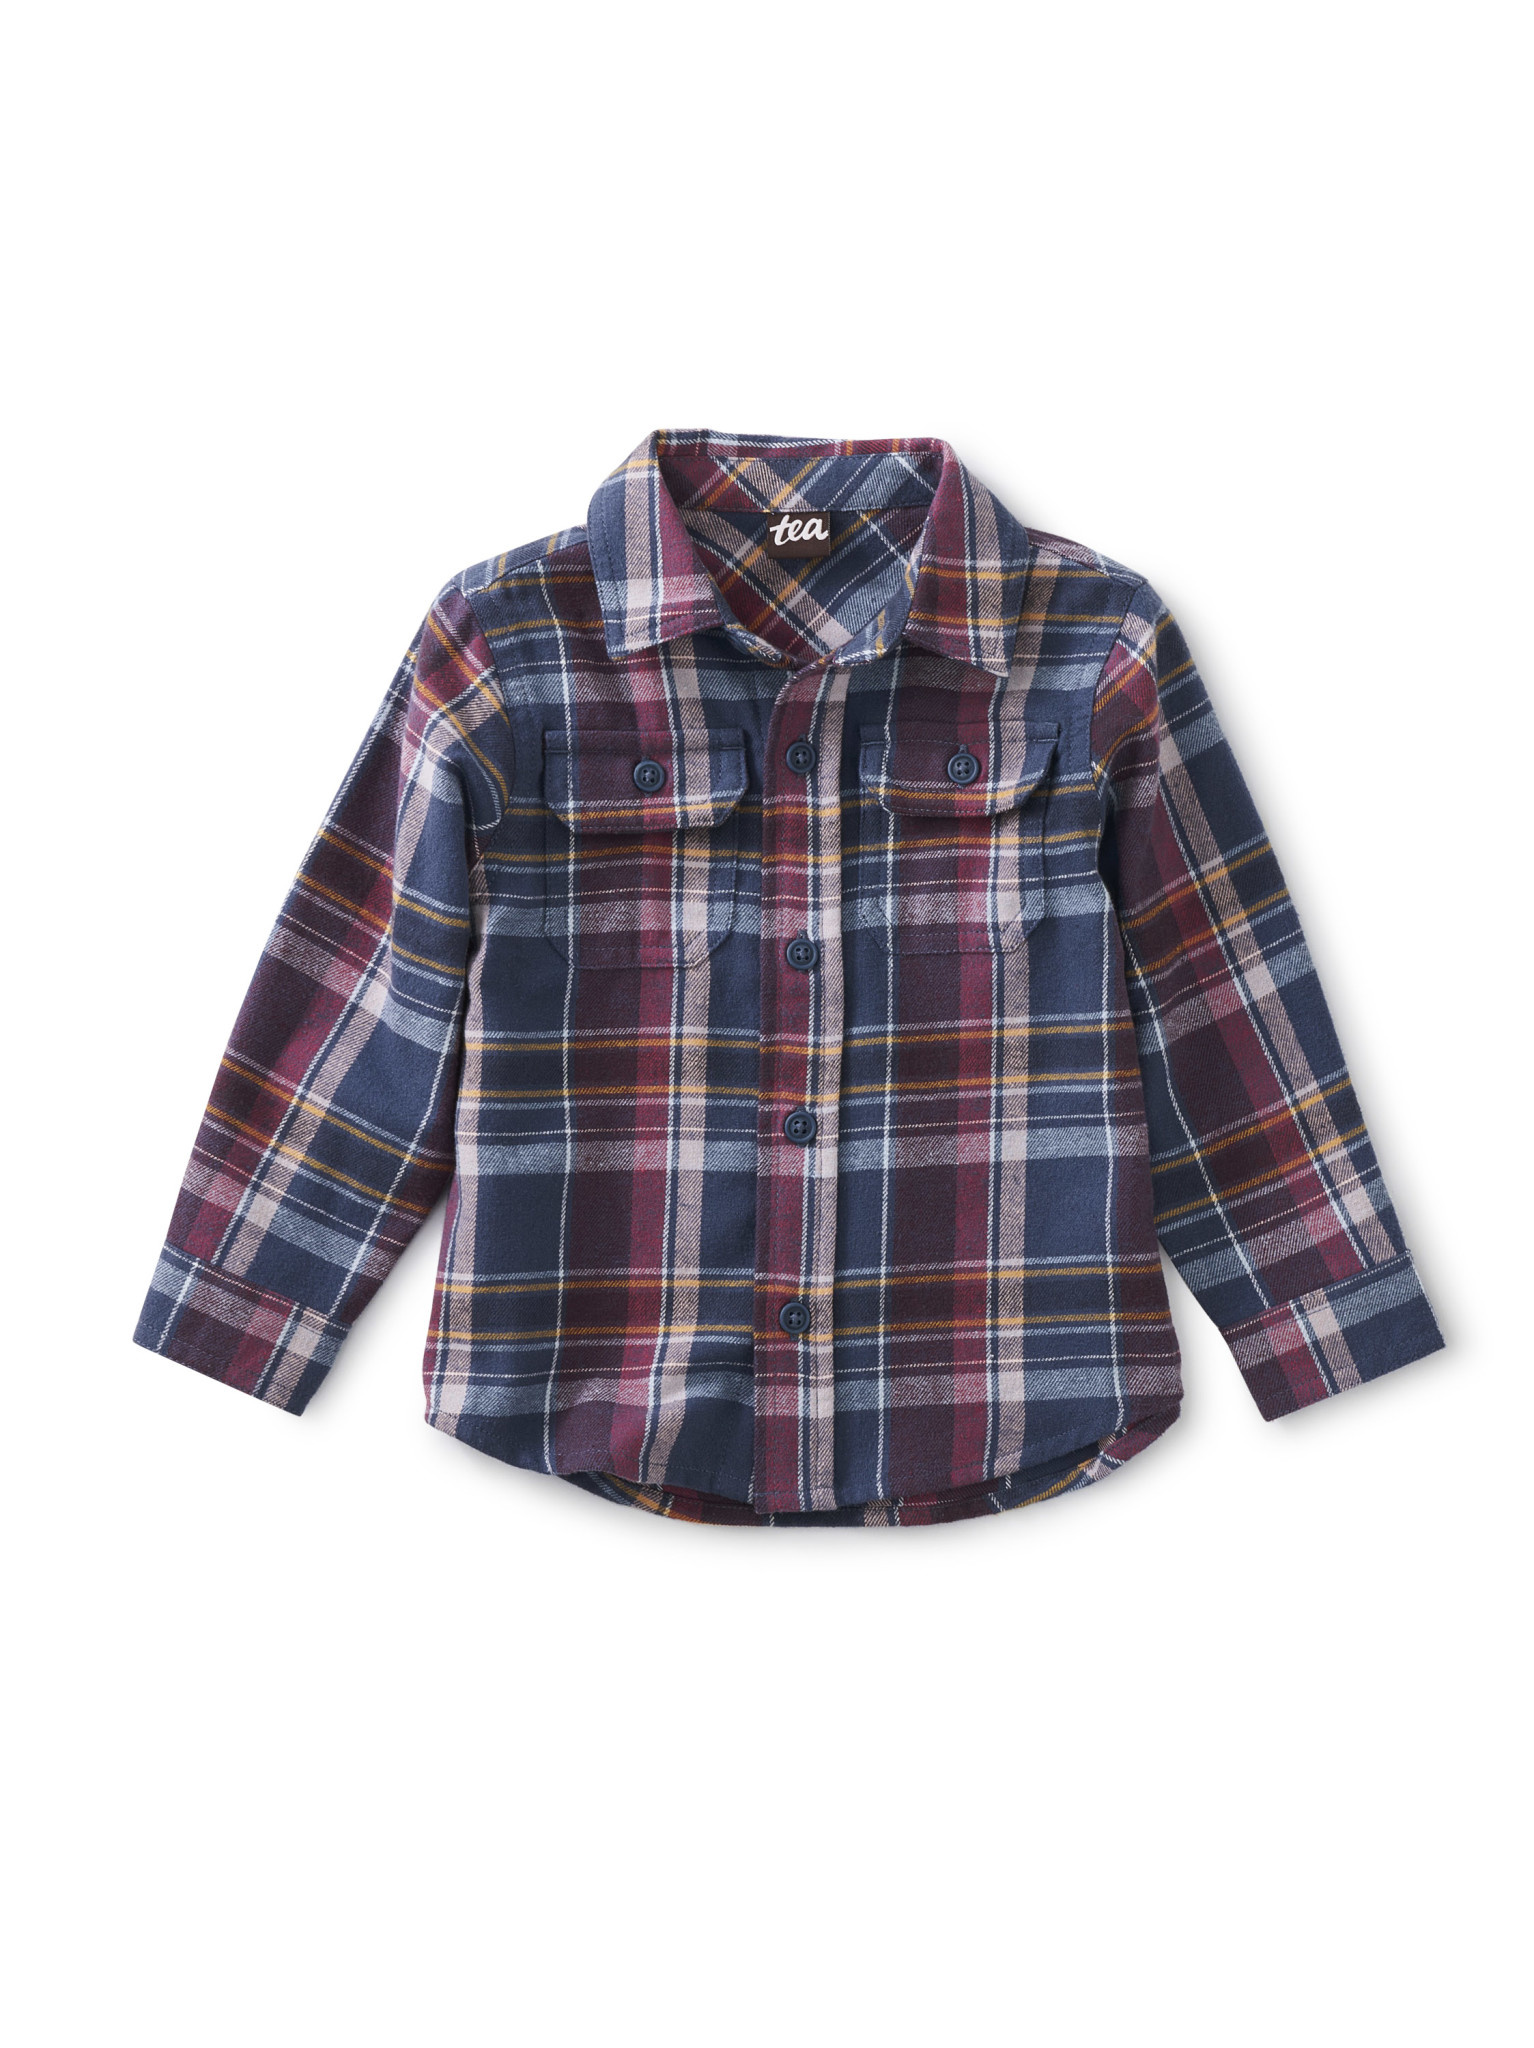 Tea Collection Flannel Button Up Baby Shirt - Halland Plaid